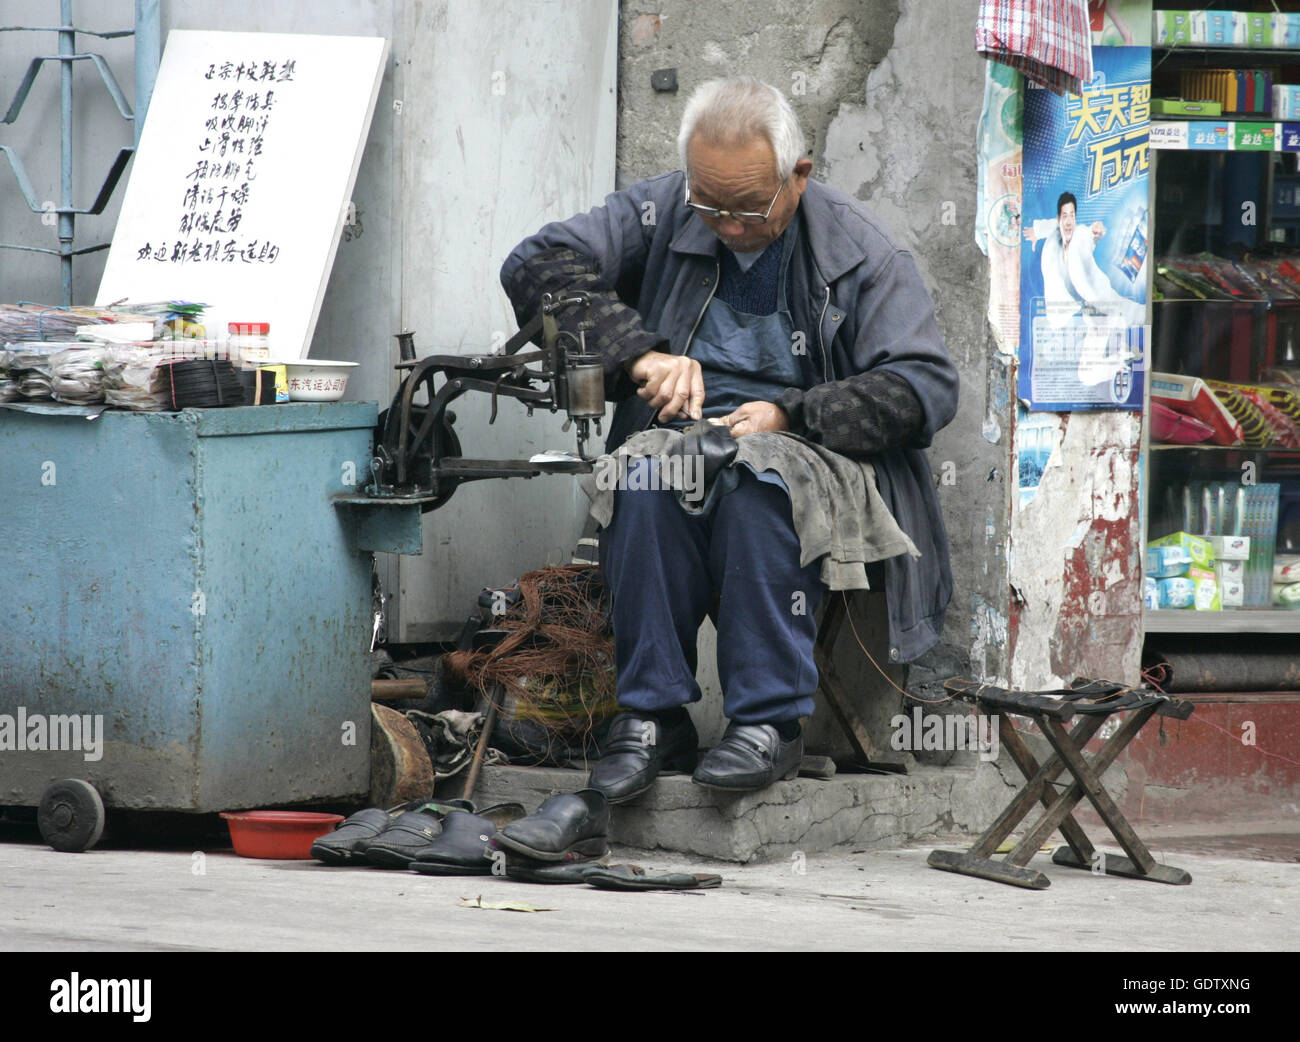 A cobbler in Shanghai - Stock Image